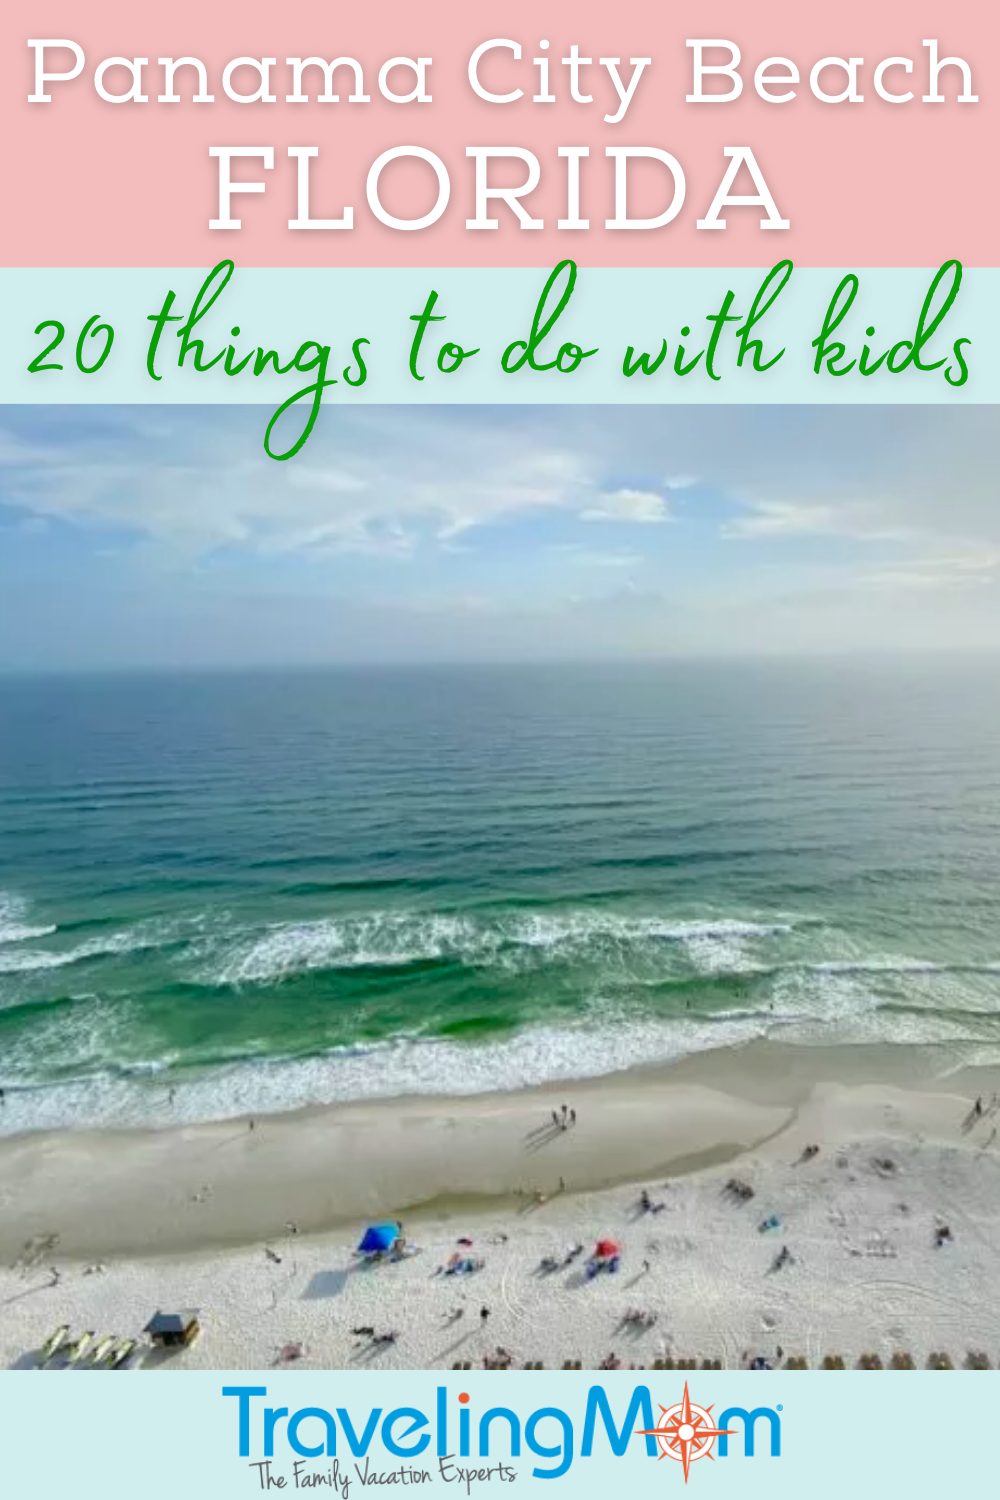 image of the ocean from overhead with text panama city beach florida 20 things to do with kids